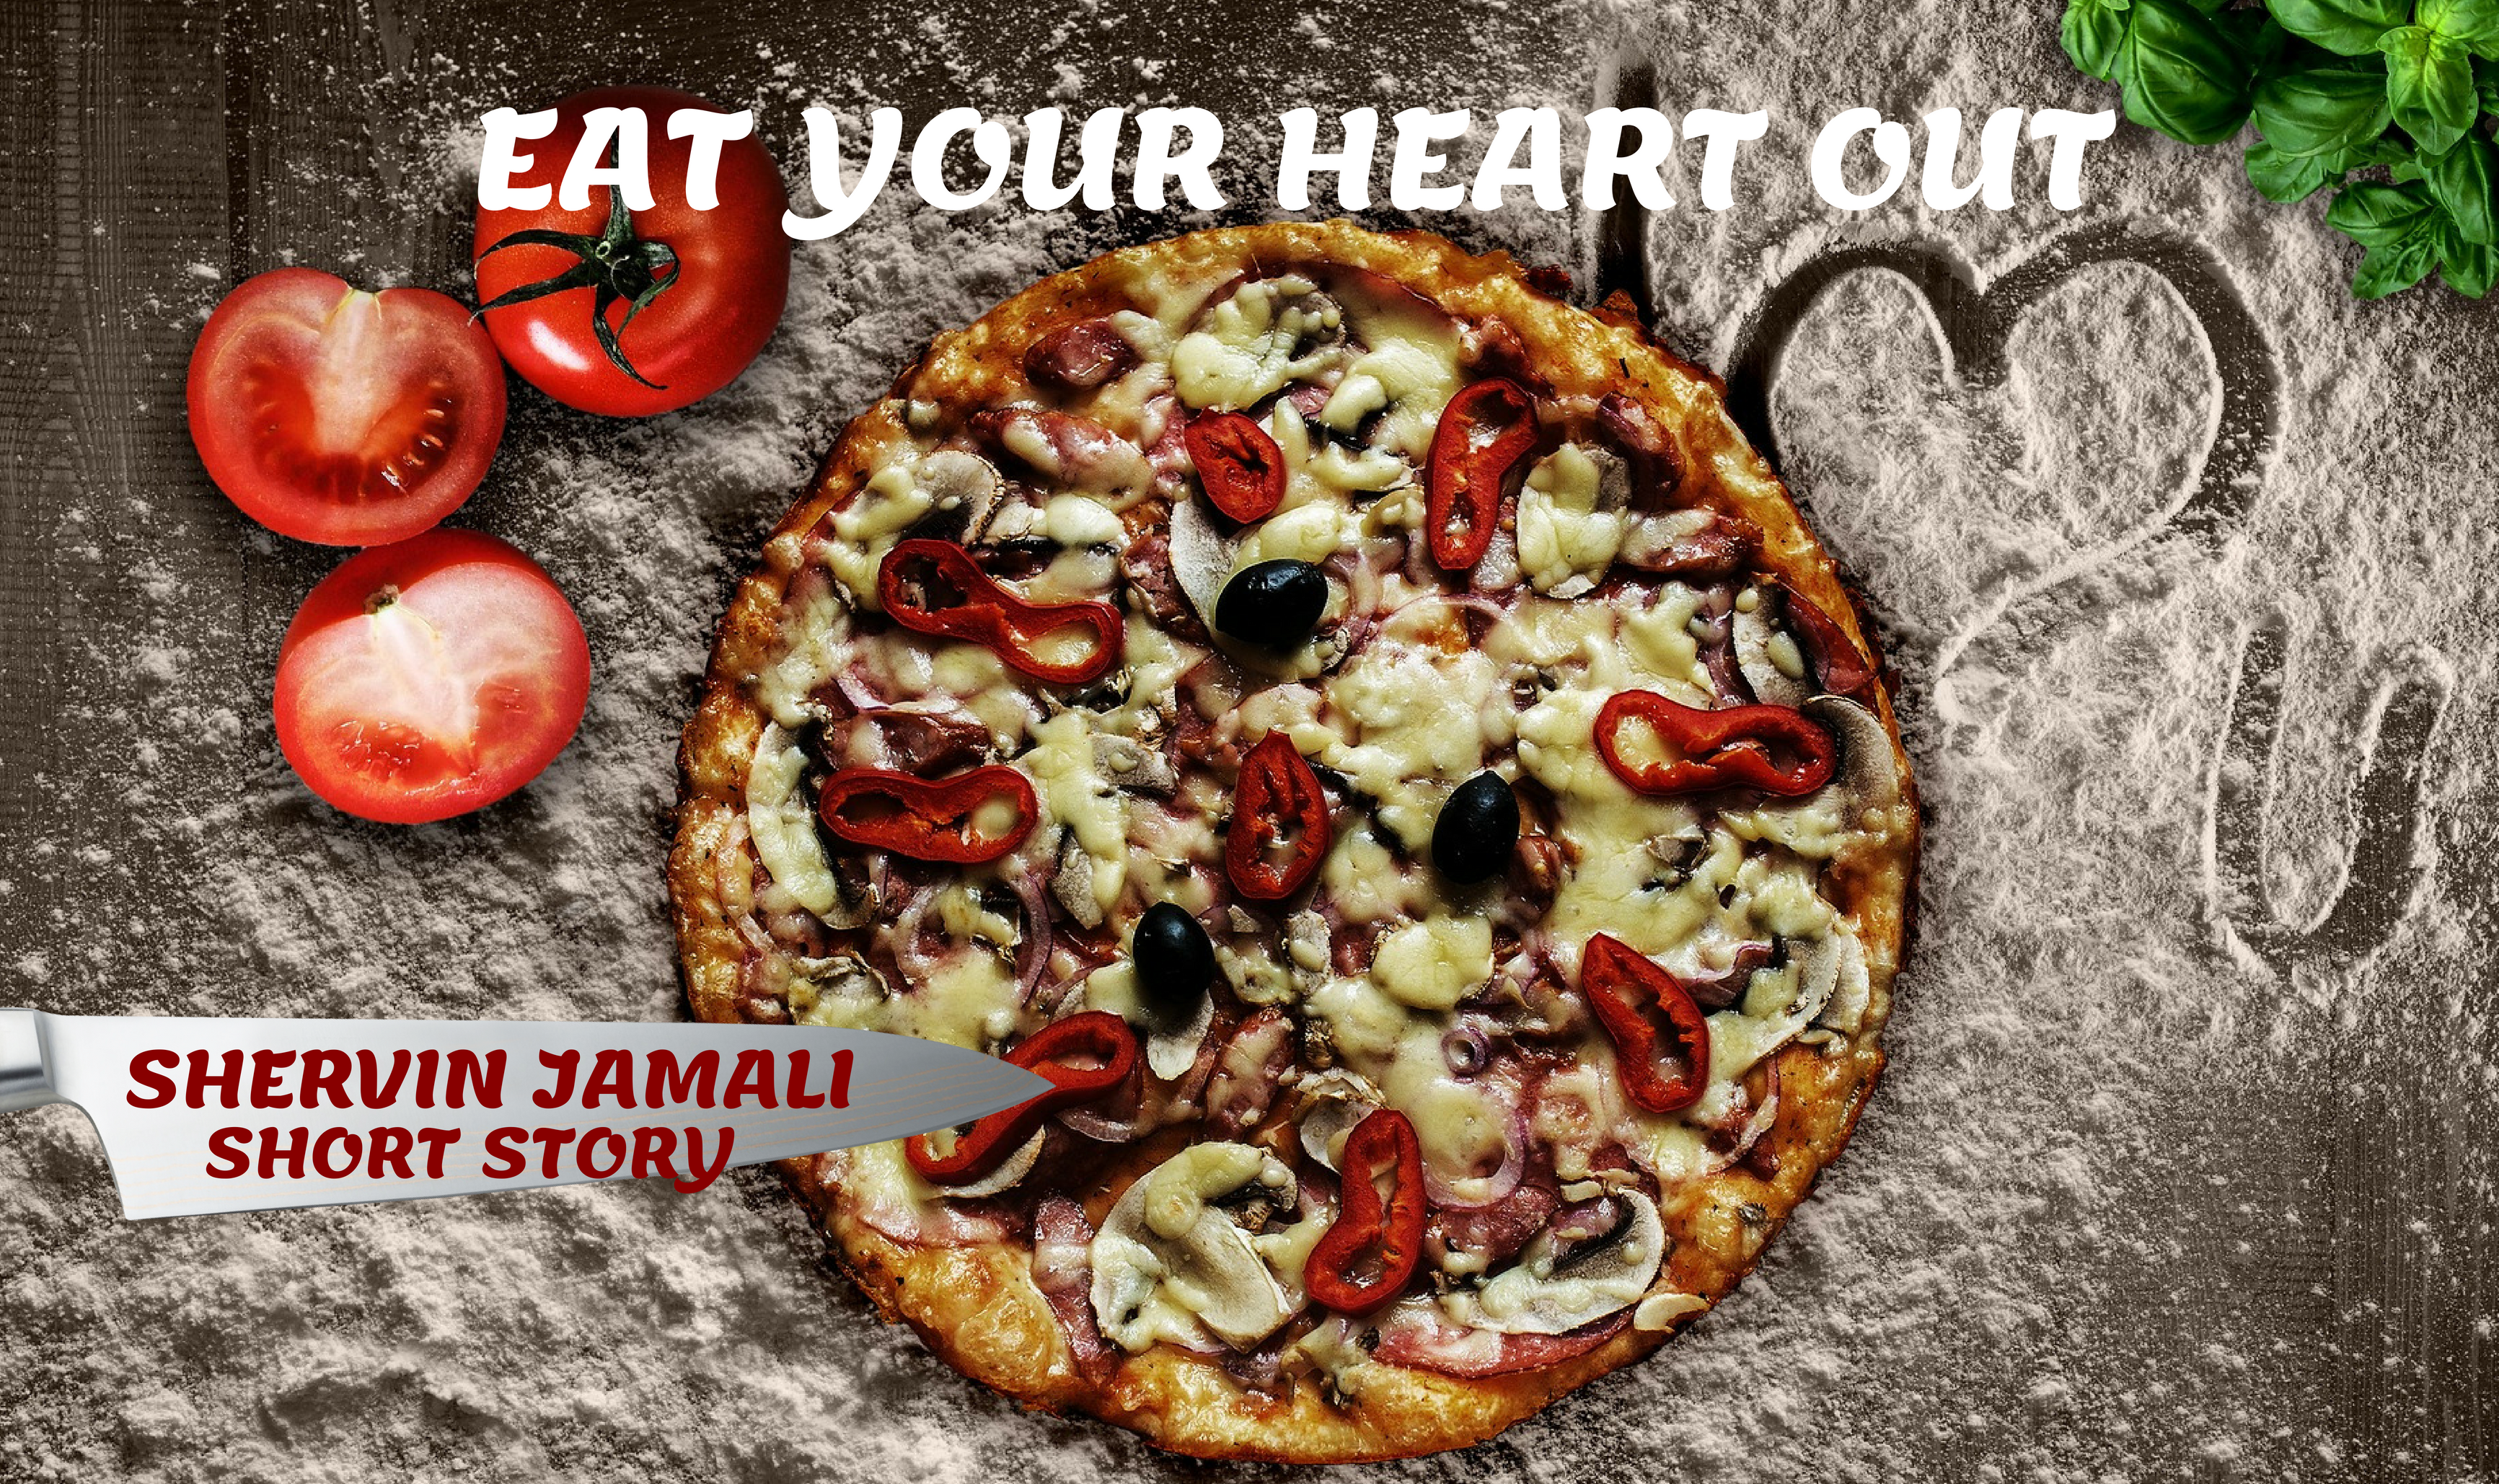 Eat Your Heart Out - Shervin Jamali - Short story Image